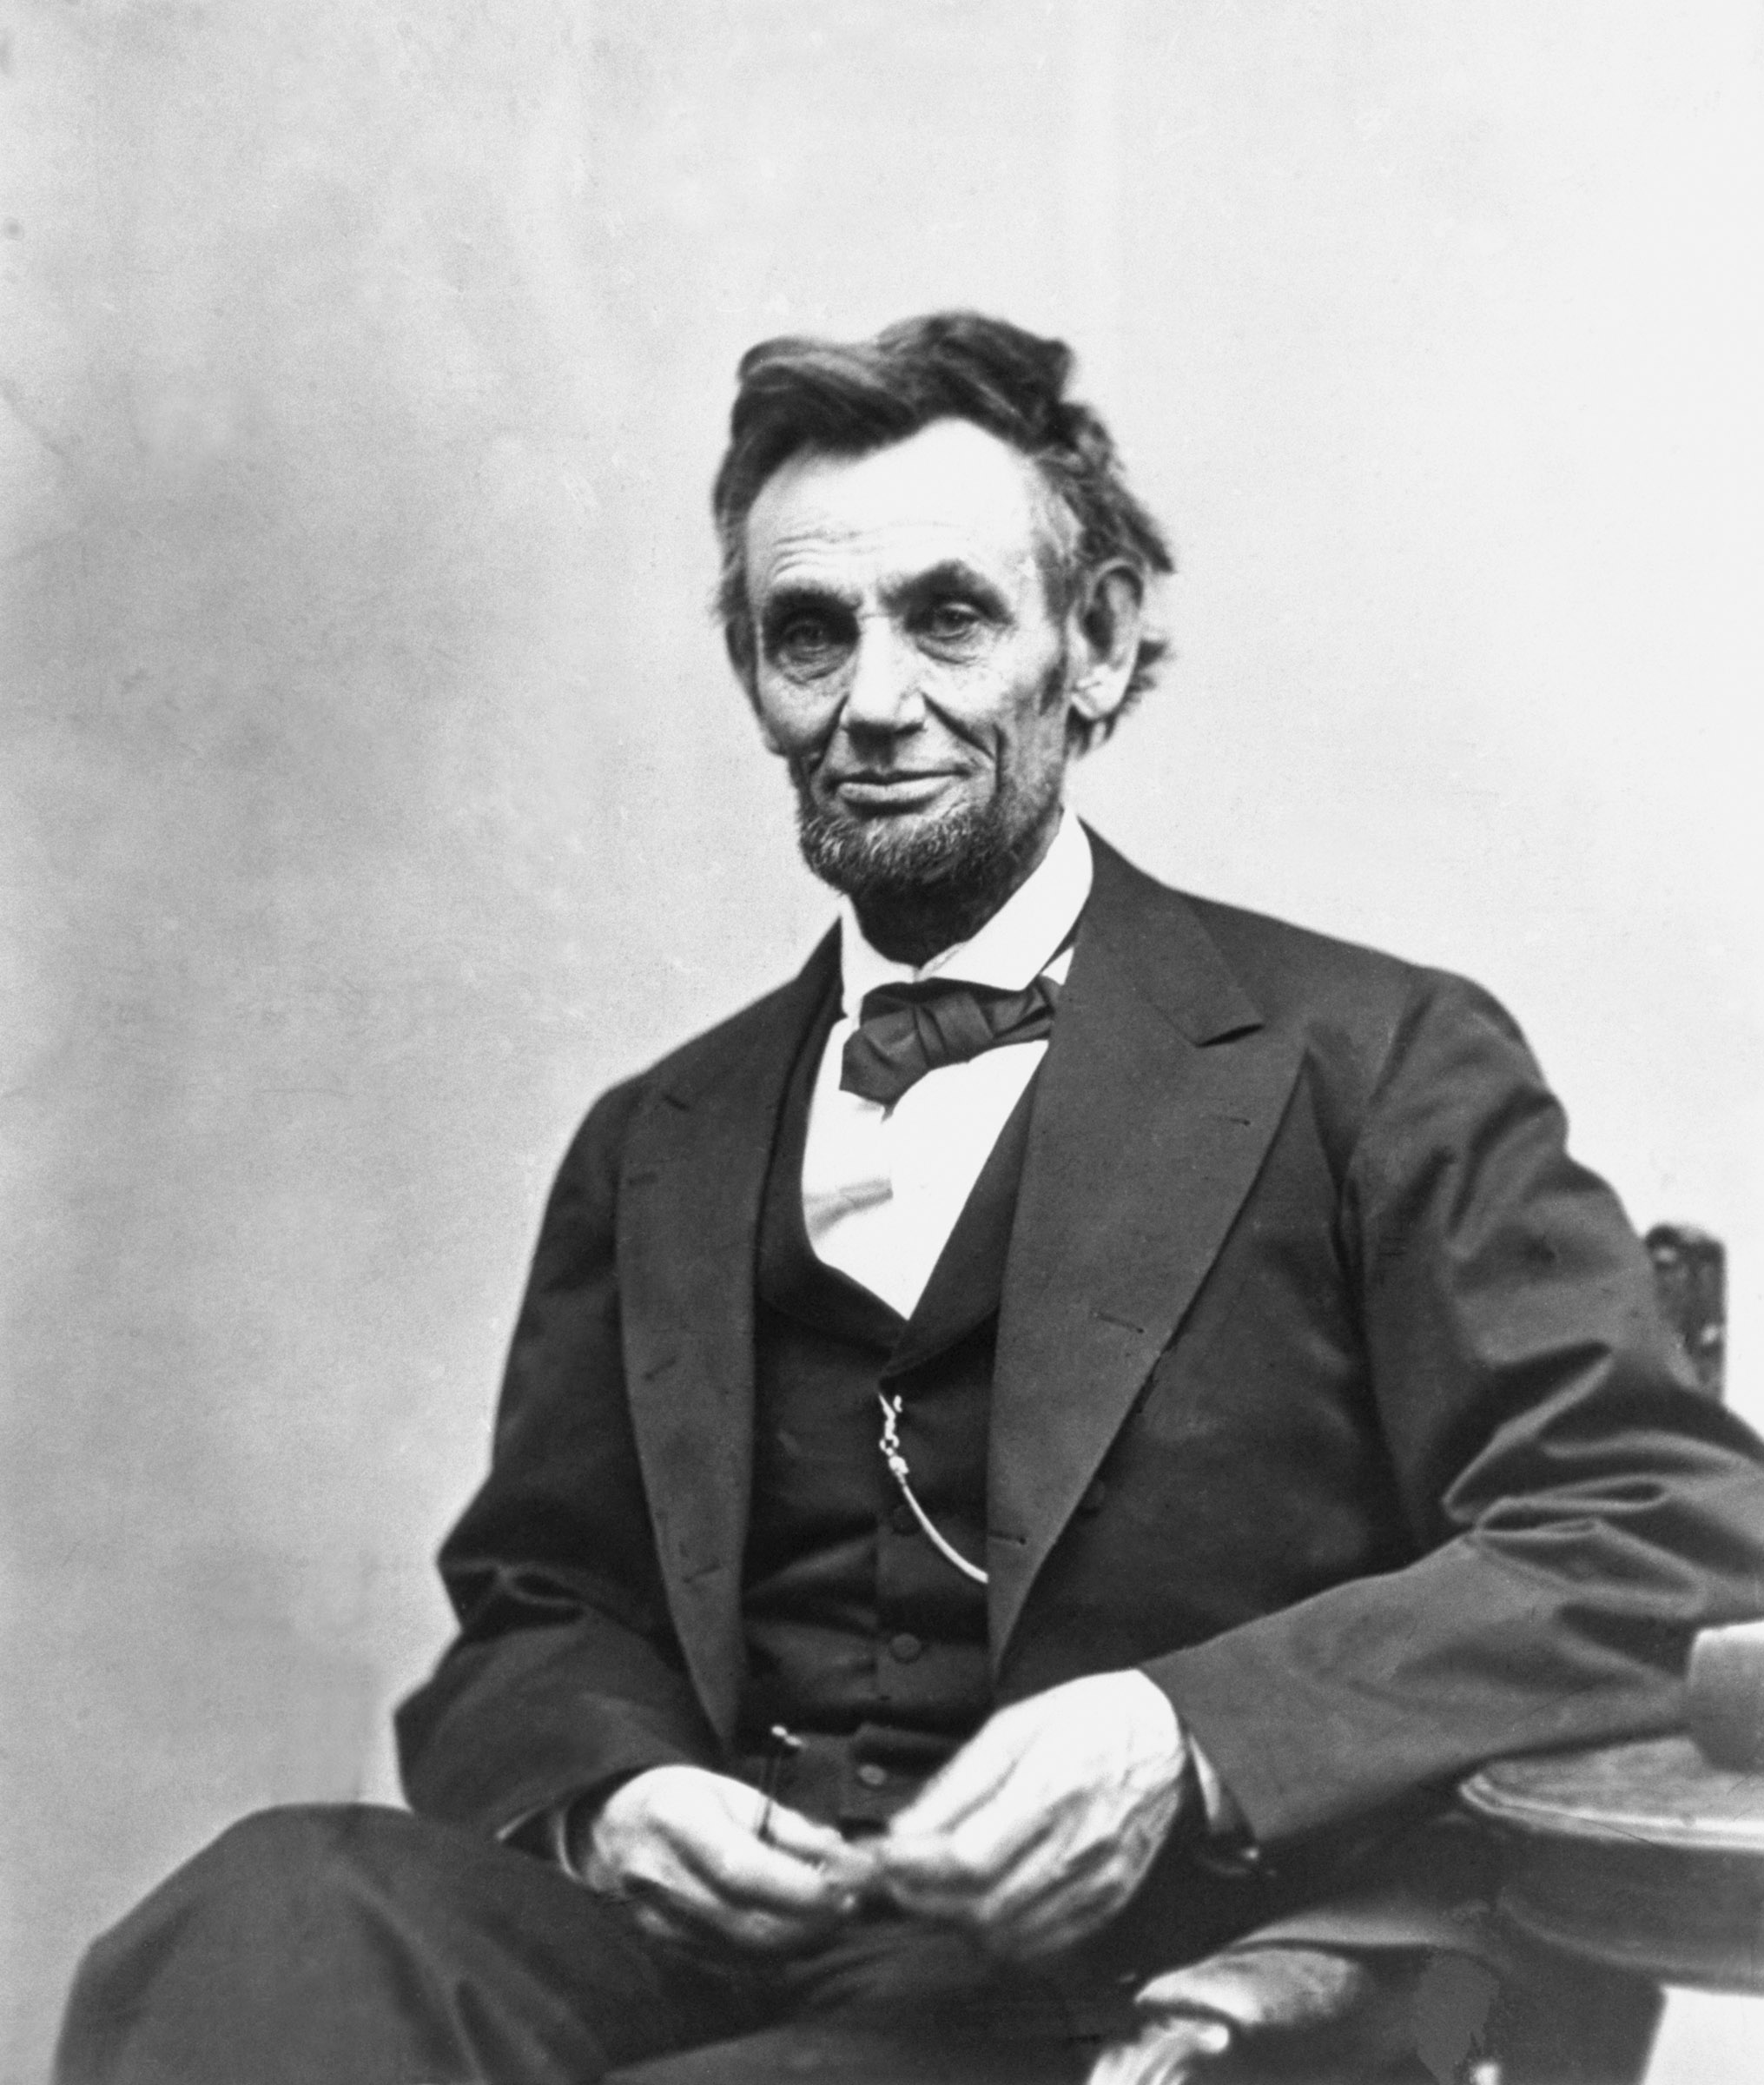 Abraham Lincoln (1809-1865), the sixteenth President of the United States.